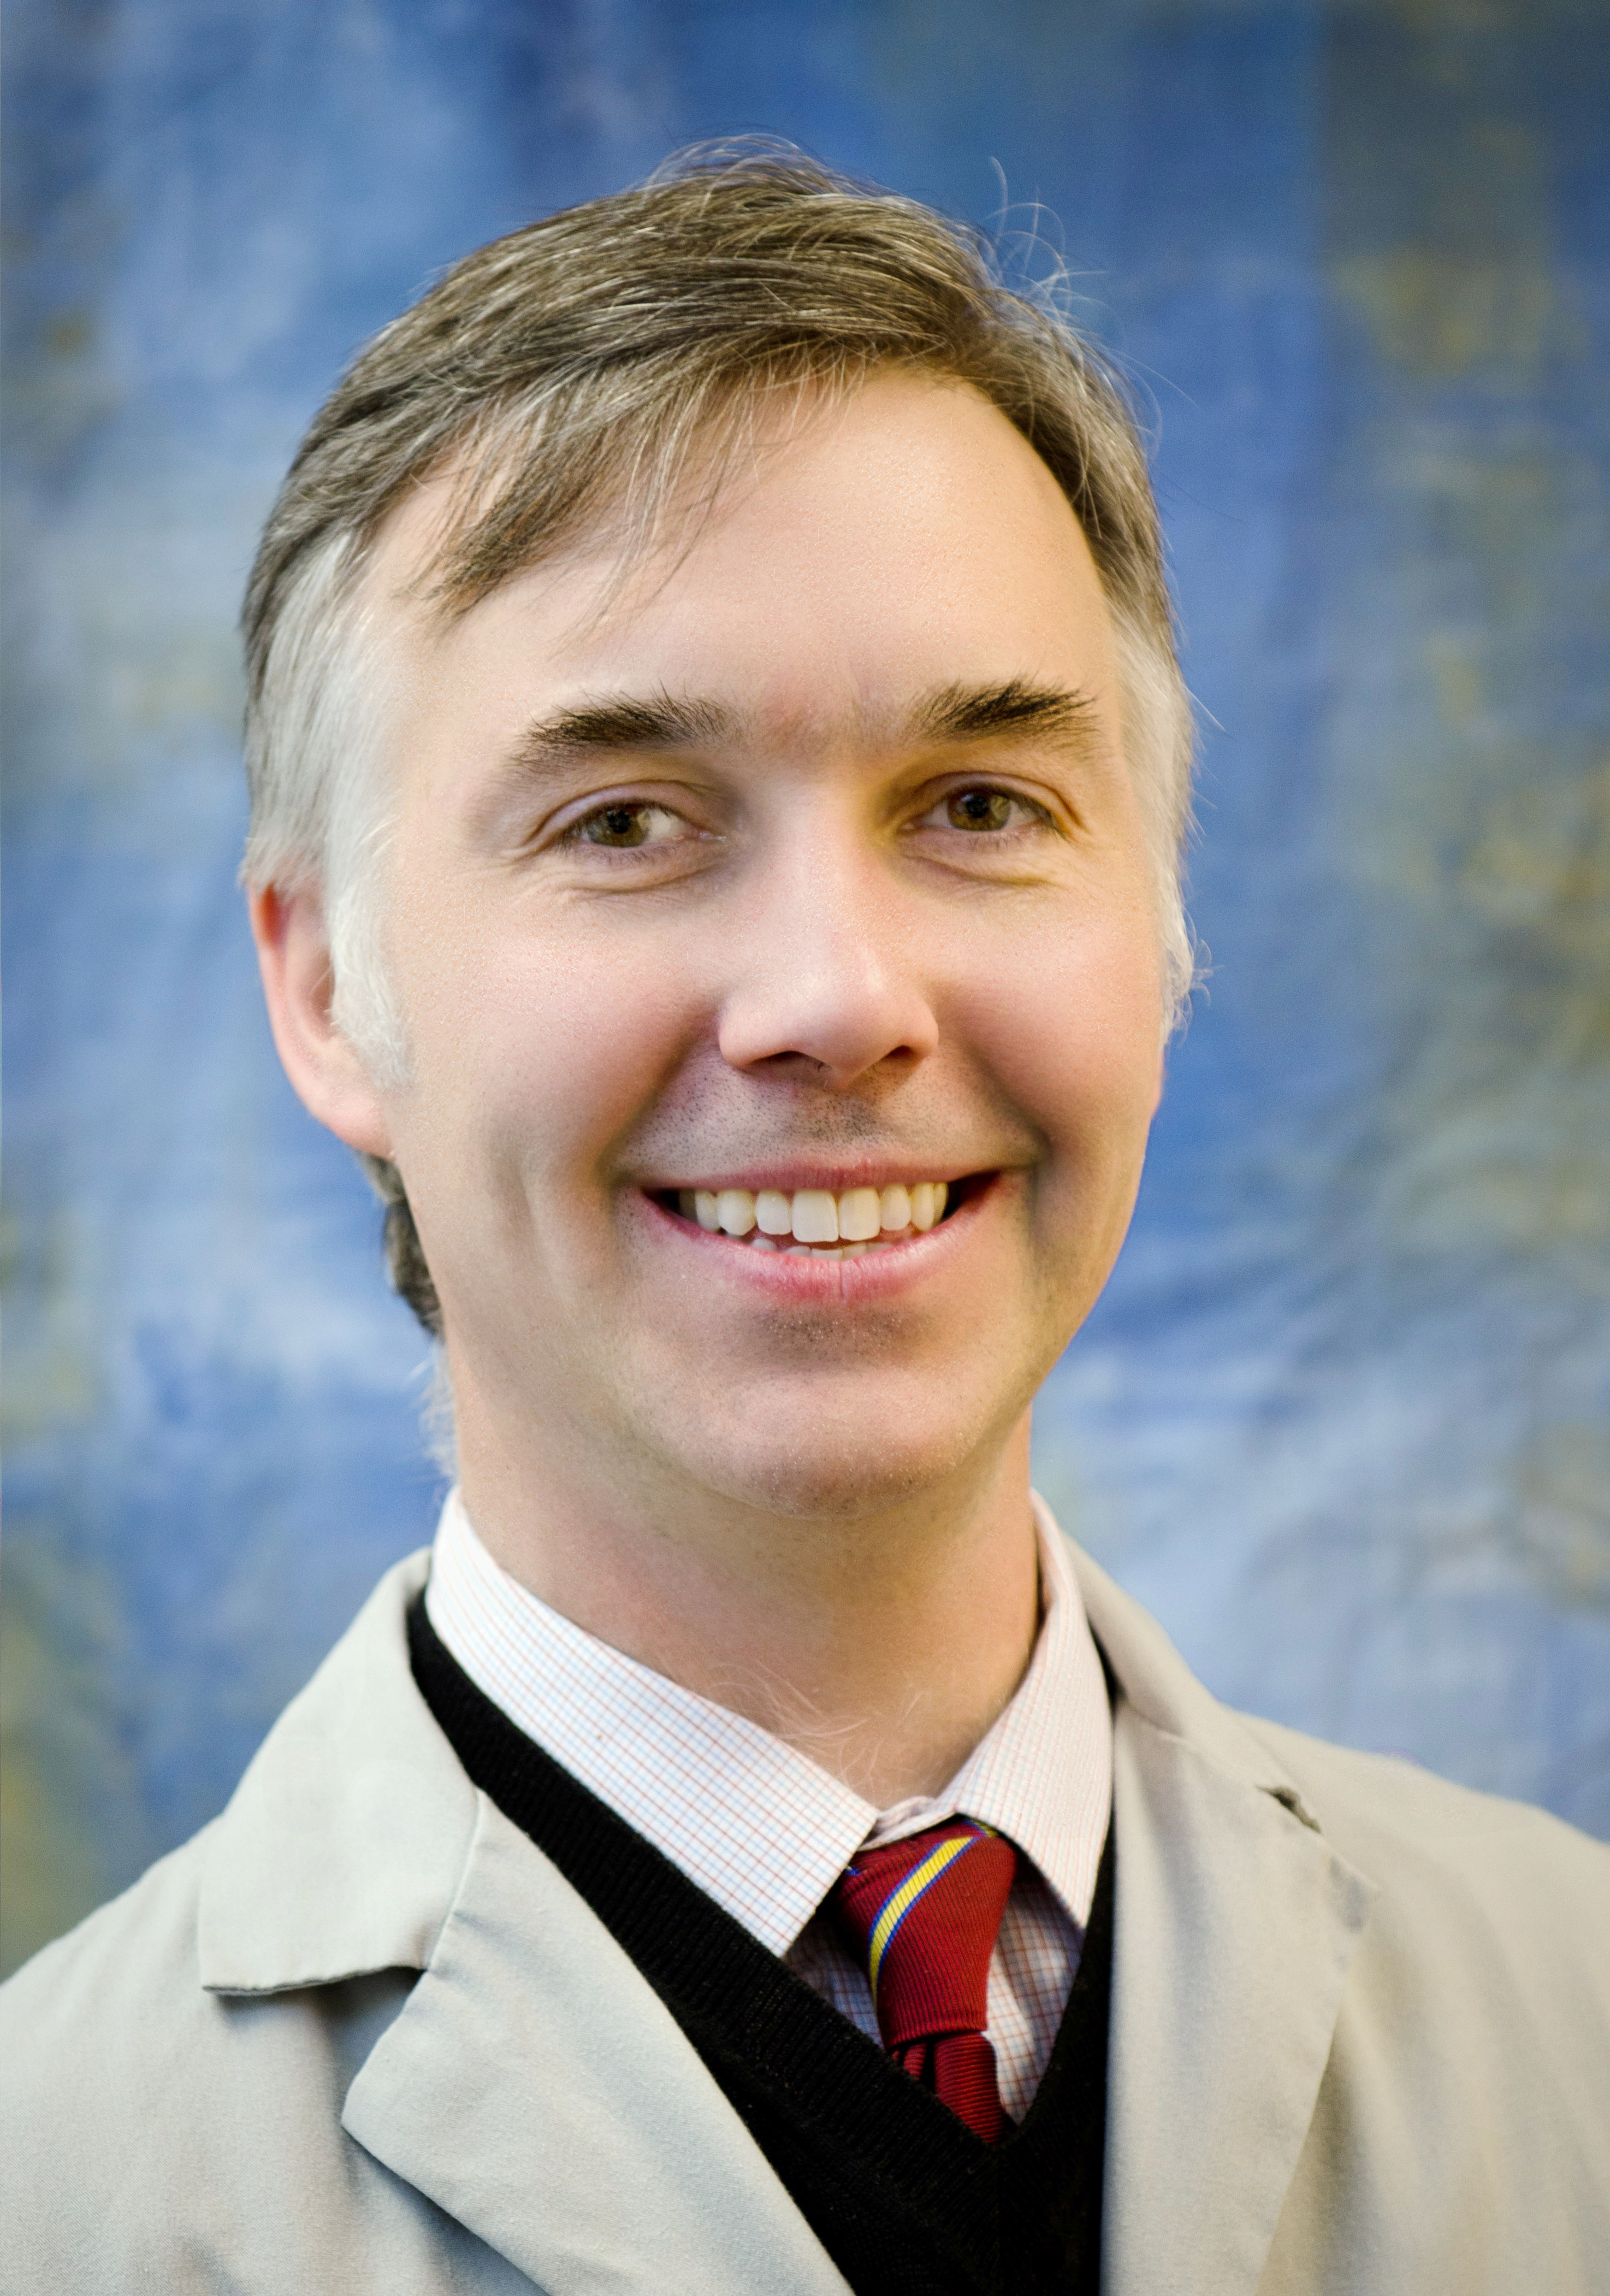 Mark B. Mycyk, MD, FACMT, FACEP